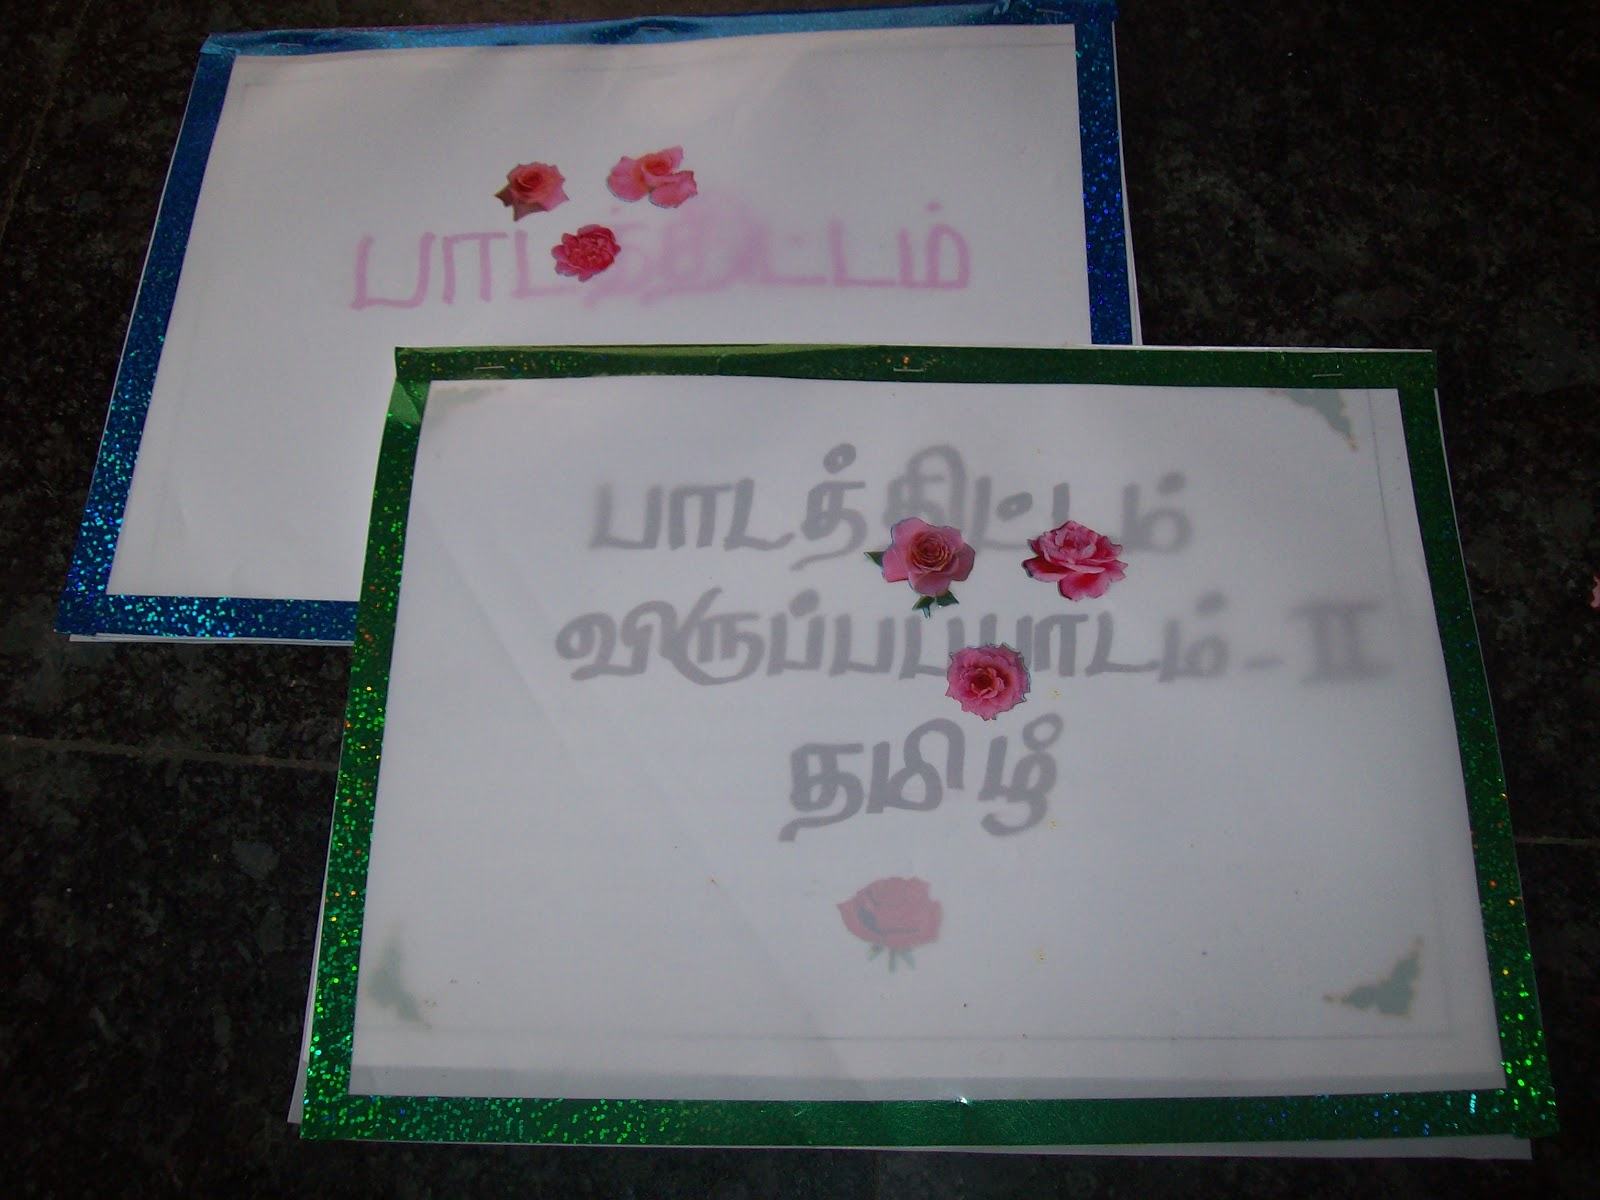 Wanted Land for lease in madurai